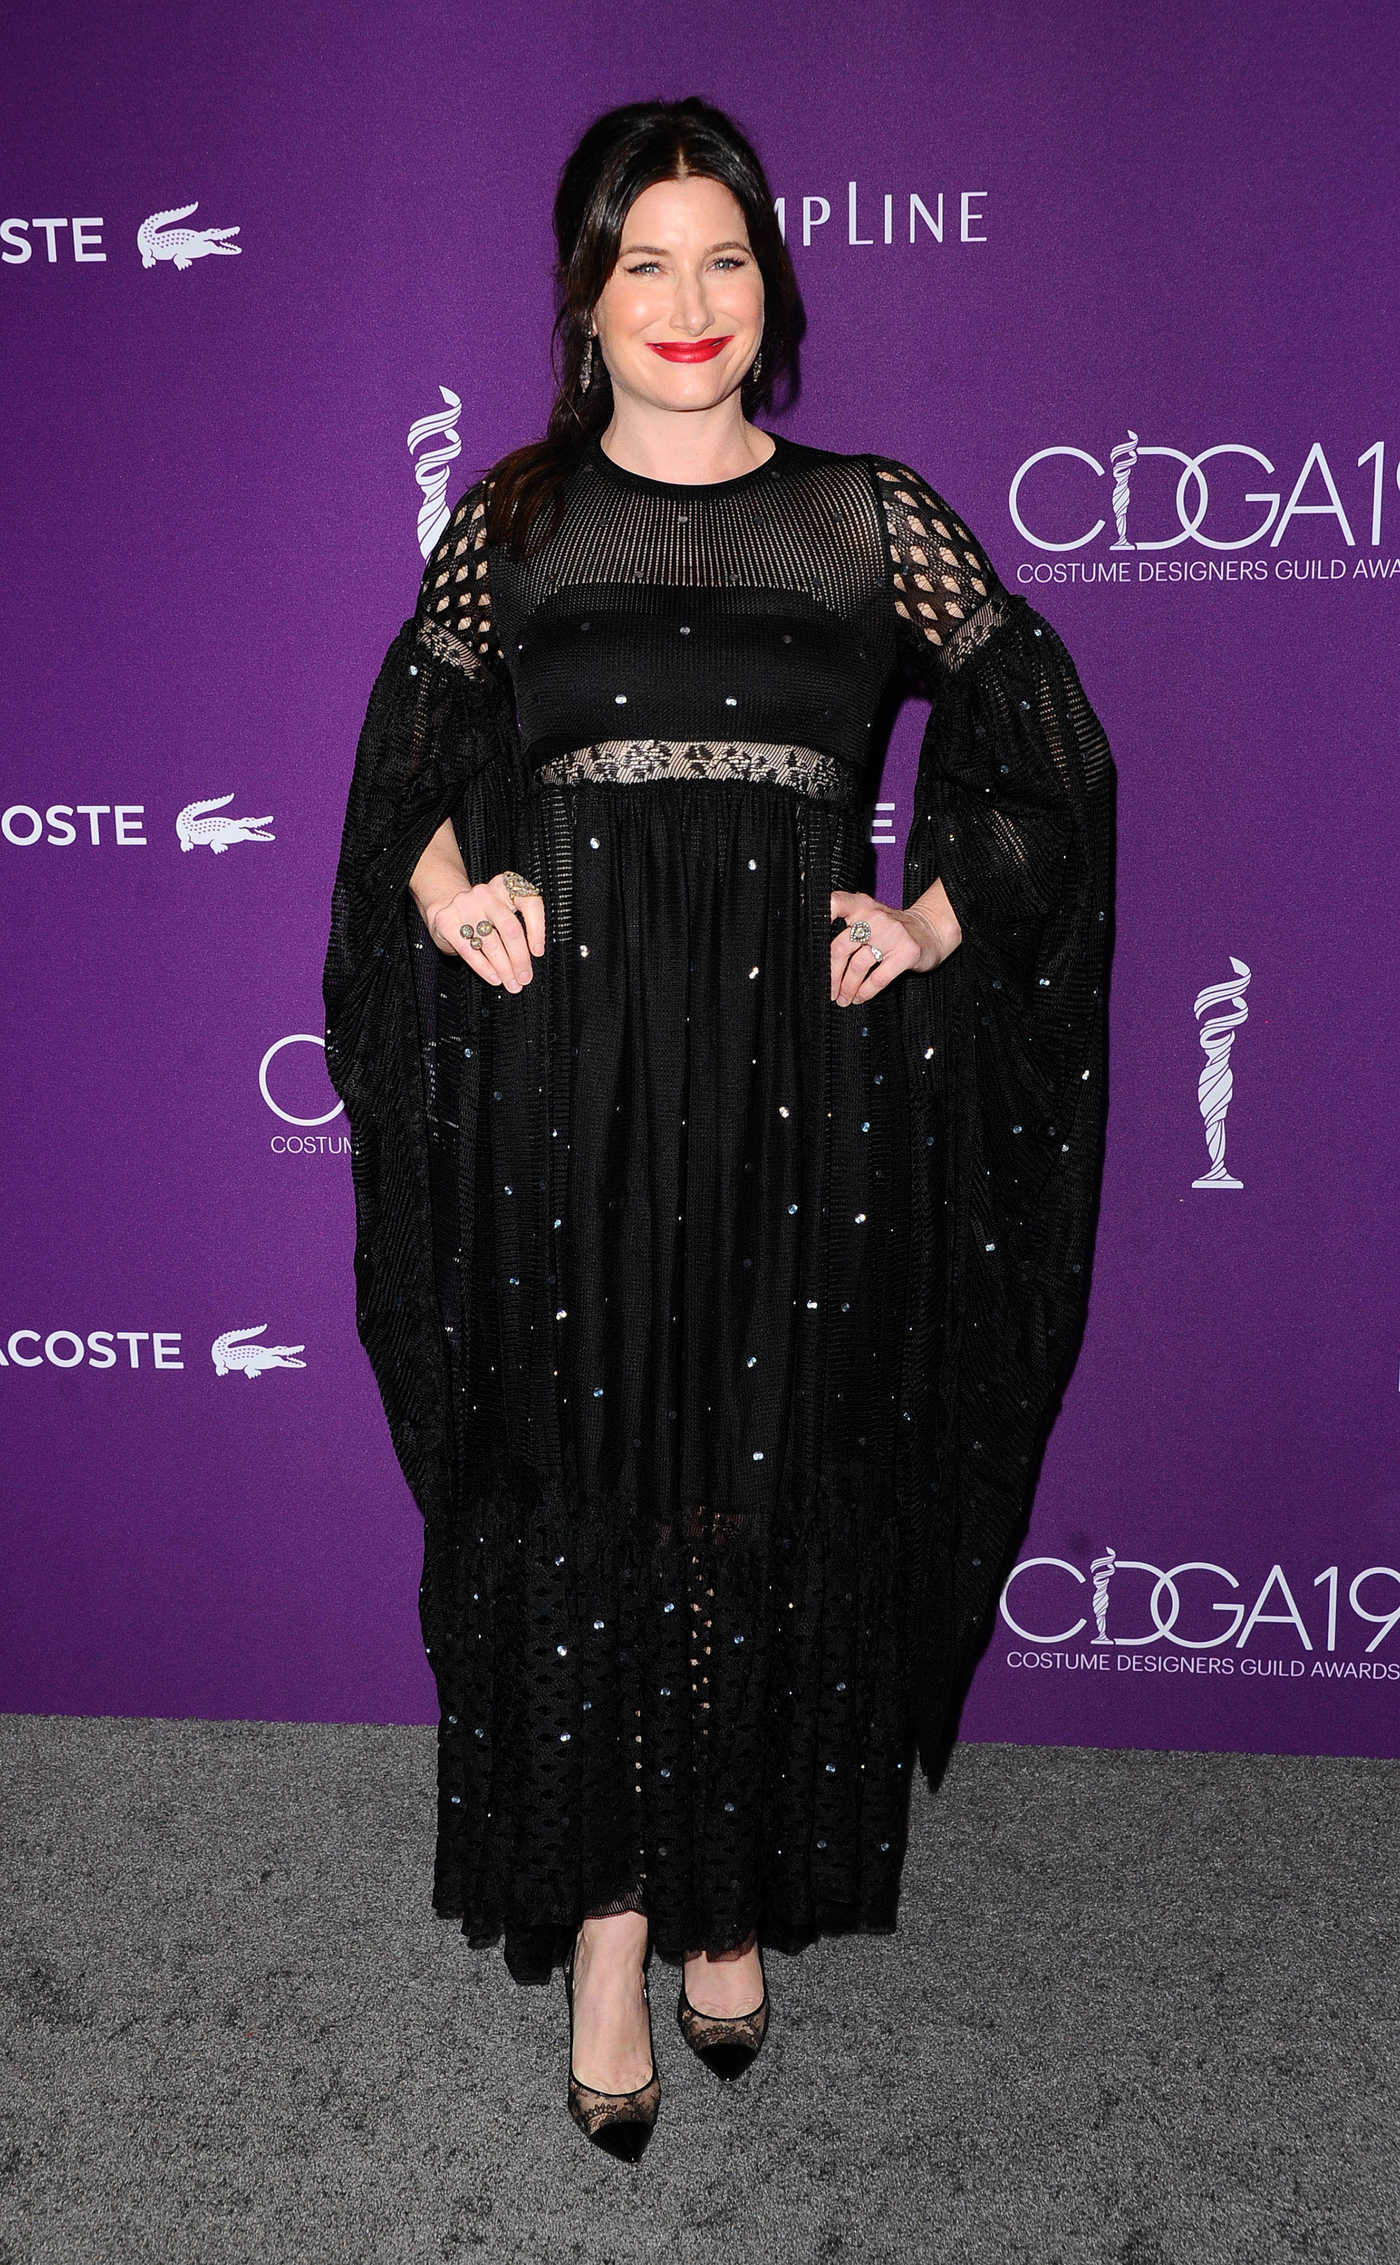 Kathryn Hahn at the 2017 Costume Designer Guild Awards in Los Angeles 02/21/2017